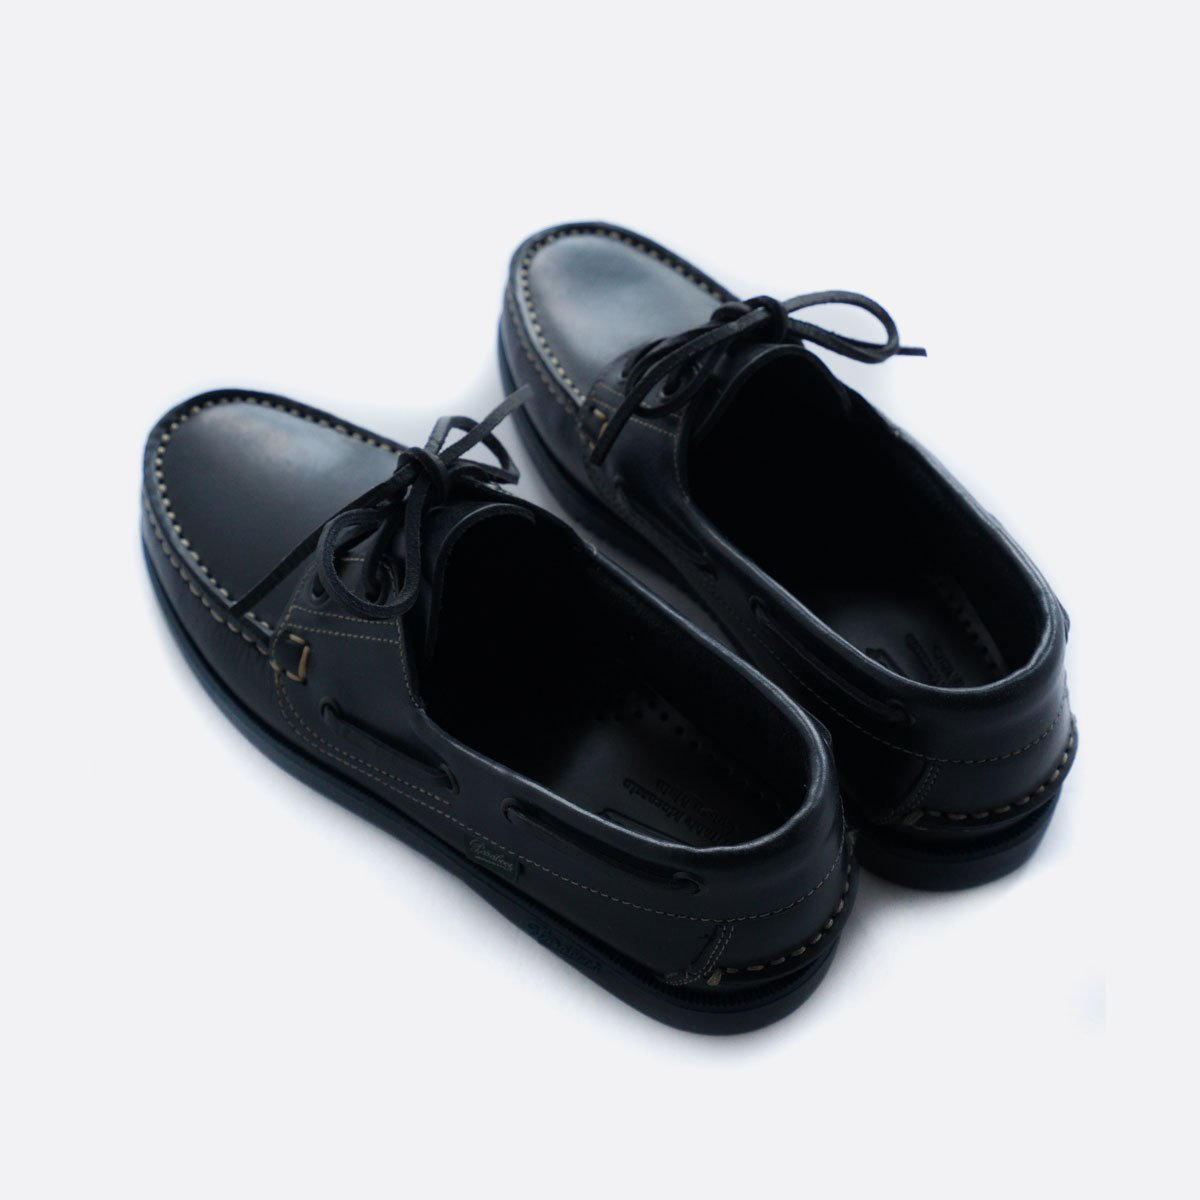 PARABOOT BARTH DECK SHOES (MARINE NAVY)4